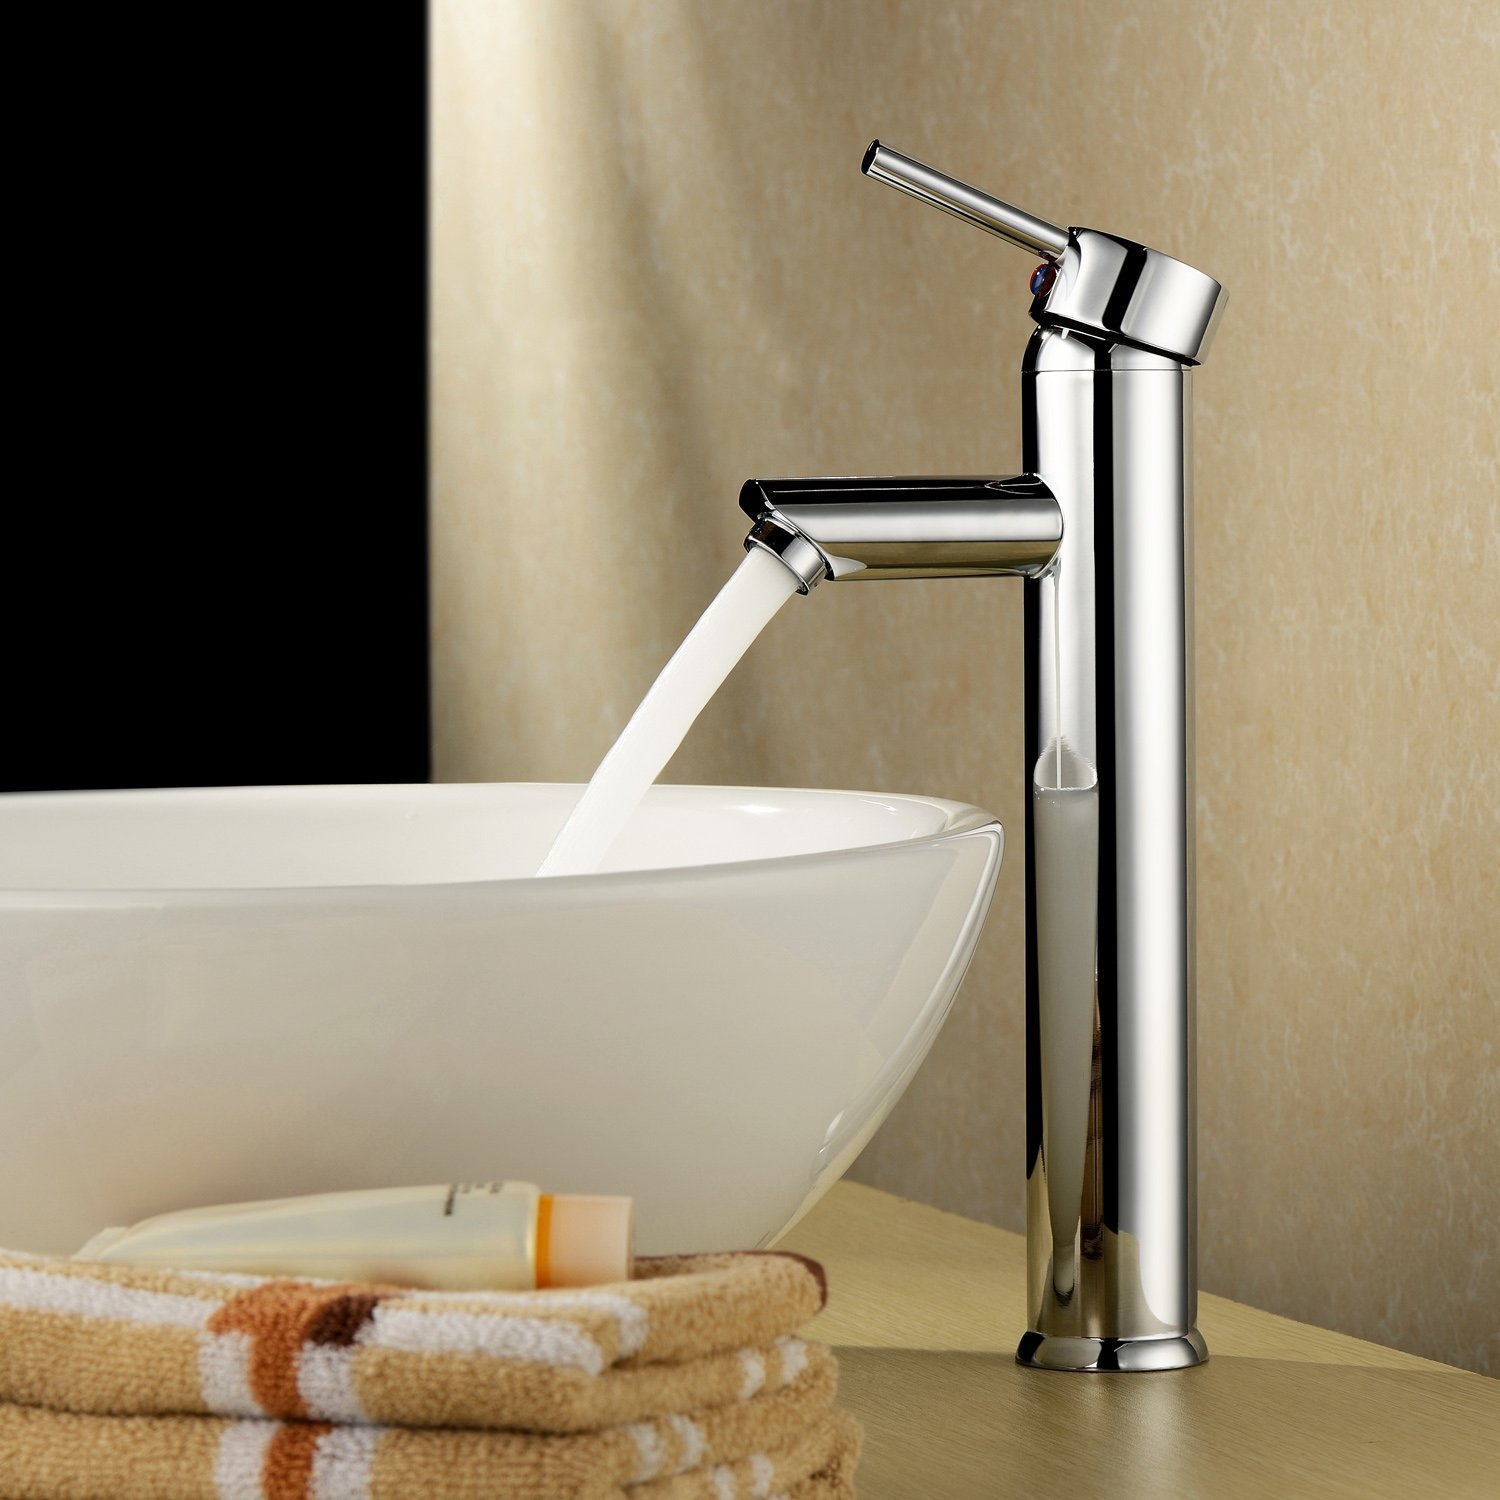 Two Hole Kitchen Sink Faucets Bathroom Faucet Single Handle within sizing 1500 X 1500